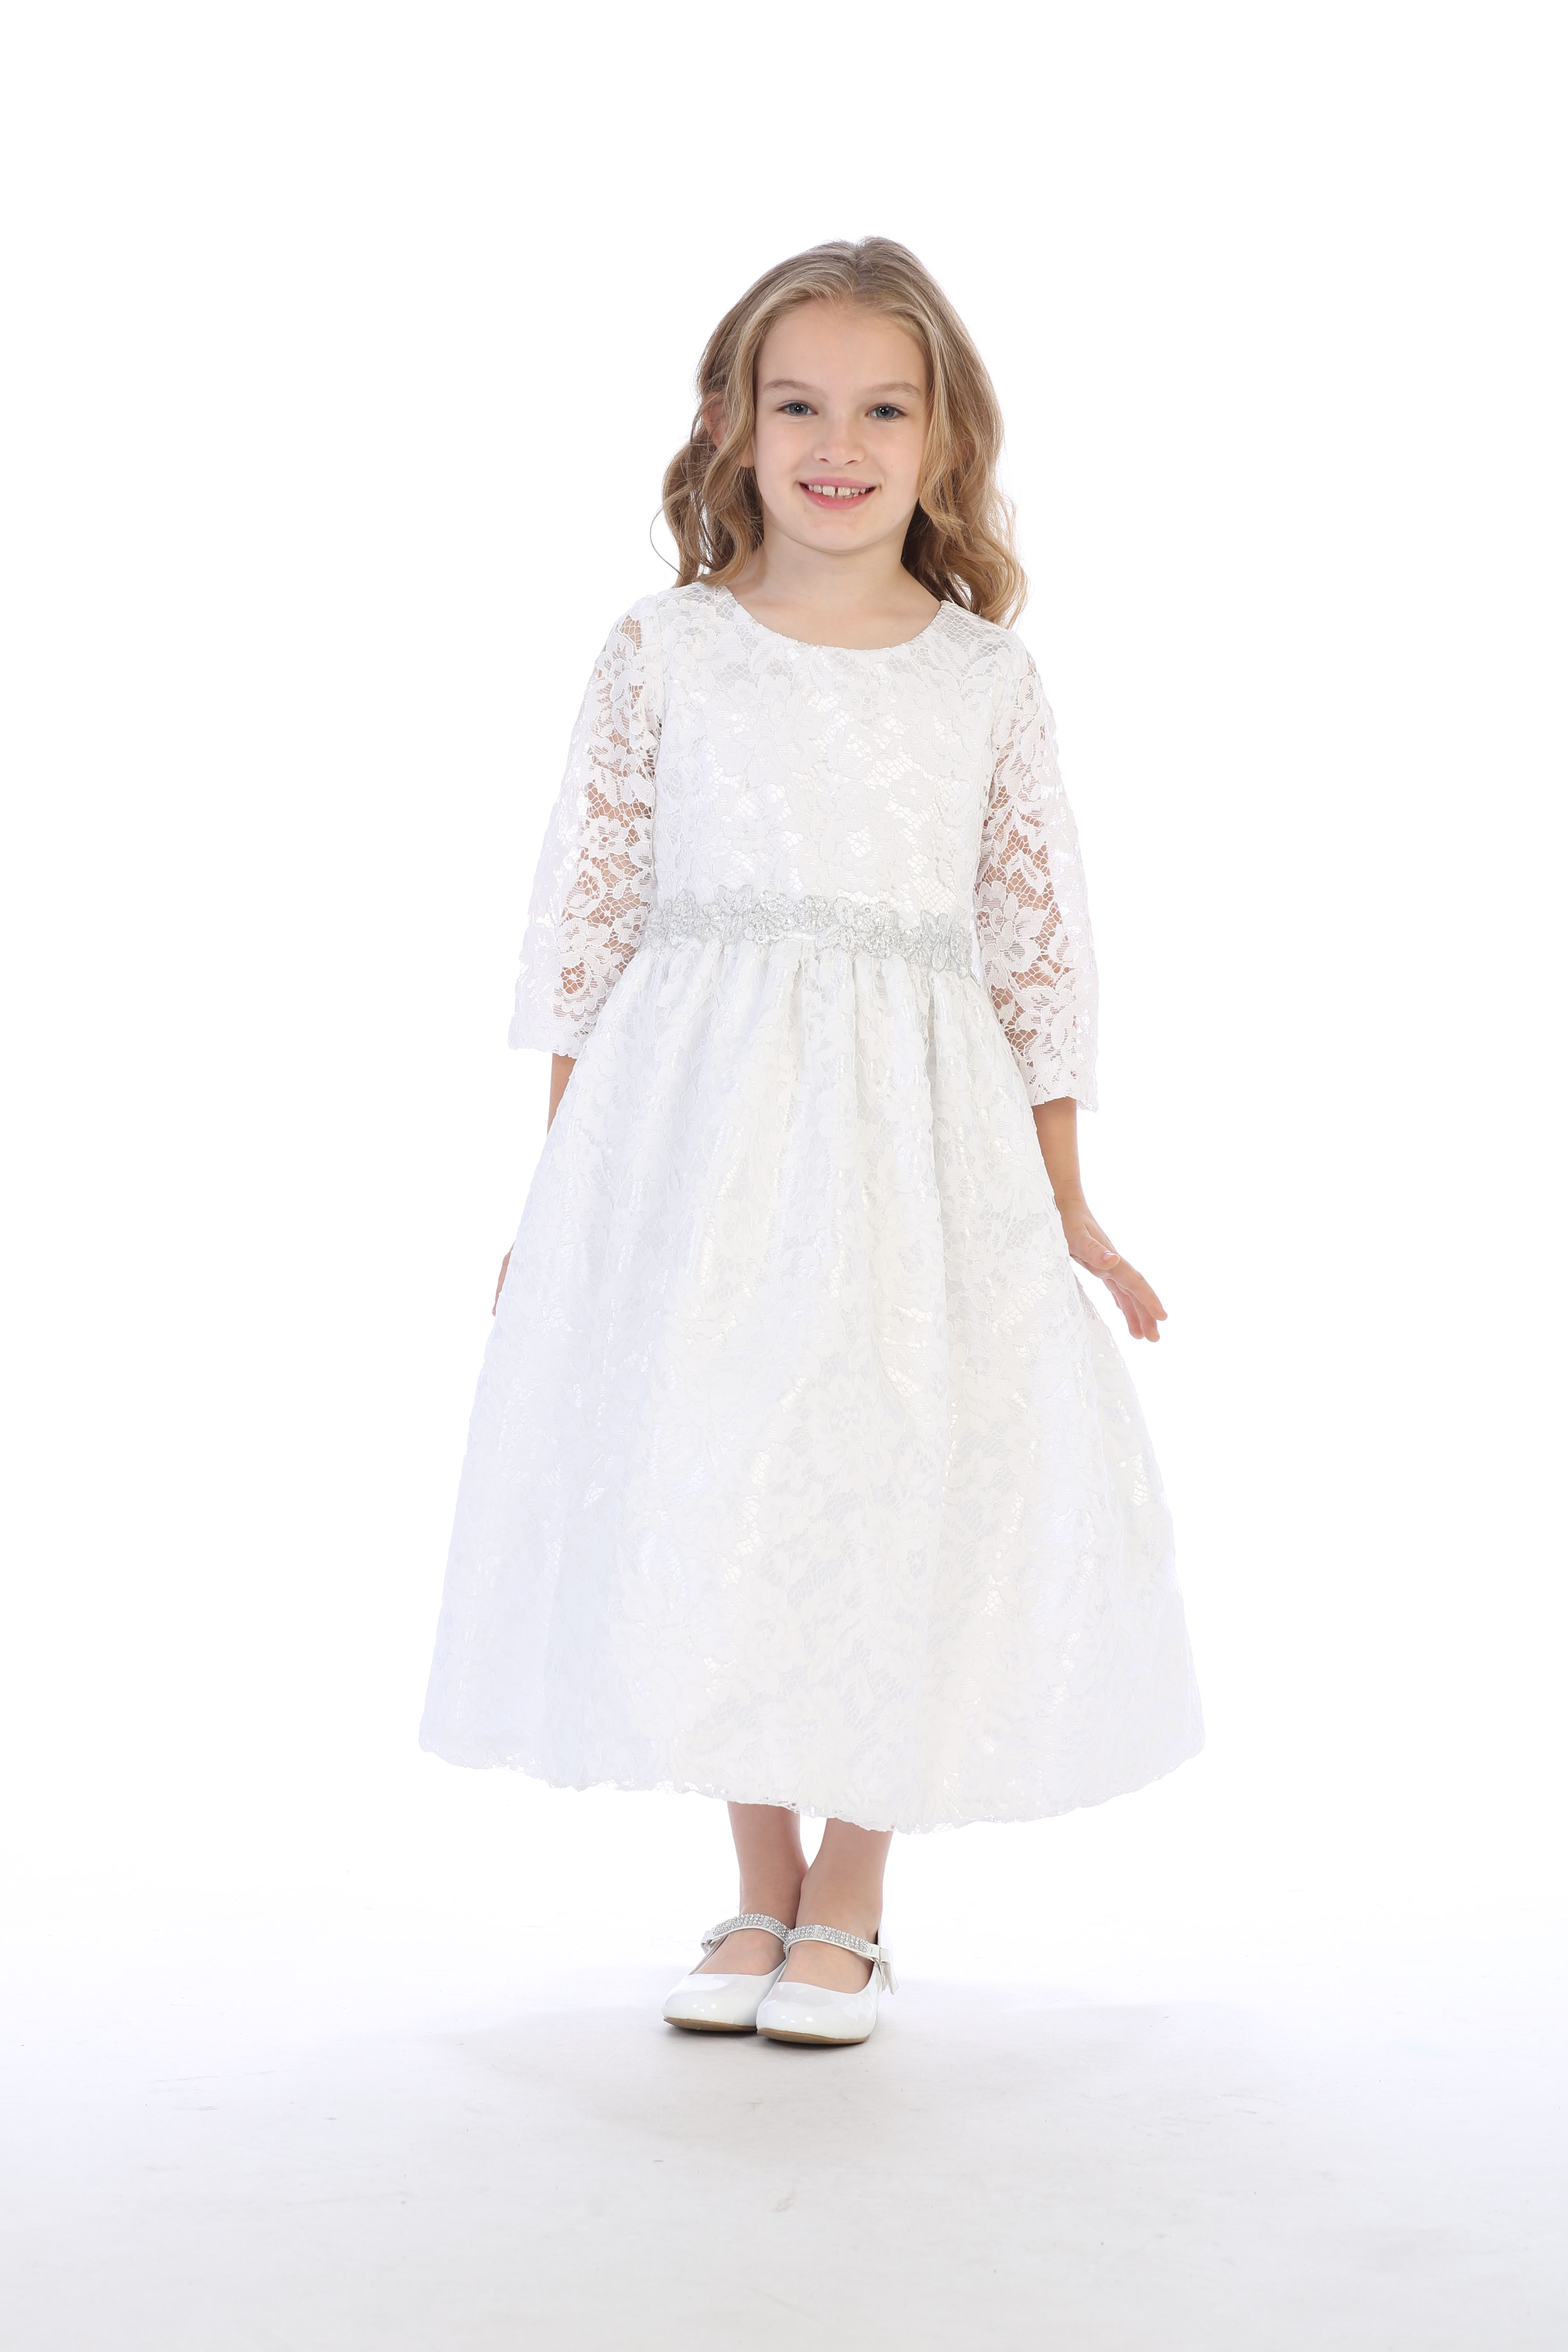 White Flower Girls First Communion Dress Lace 3 4 Sleeve Easter Wedding Party Communion Dresses Lace Girls First Communion Dresses Prom Dress Short Lace [ 5760 x 3840 Pixel ]